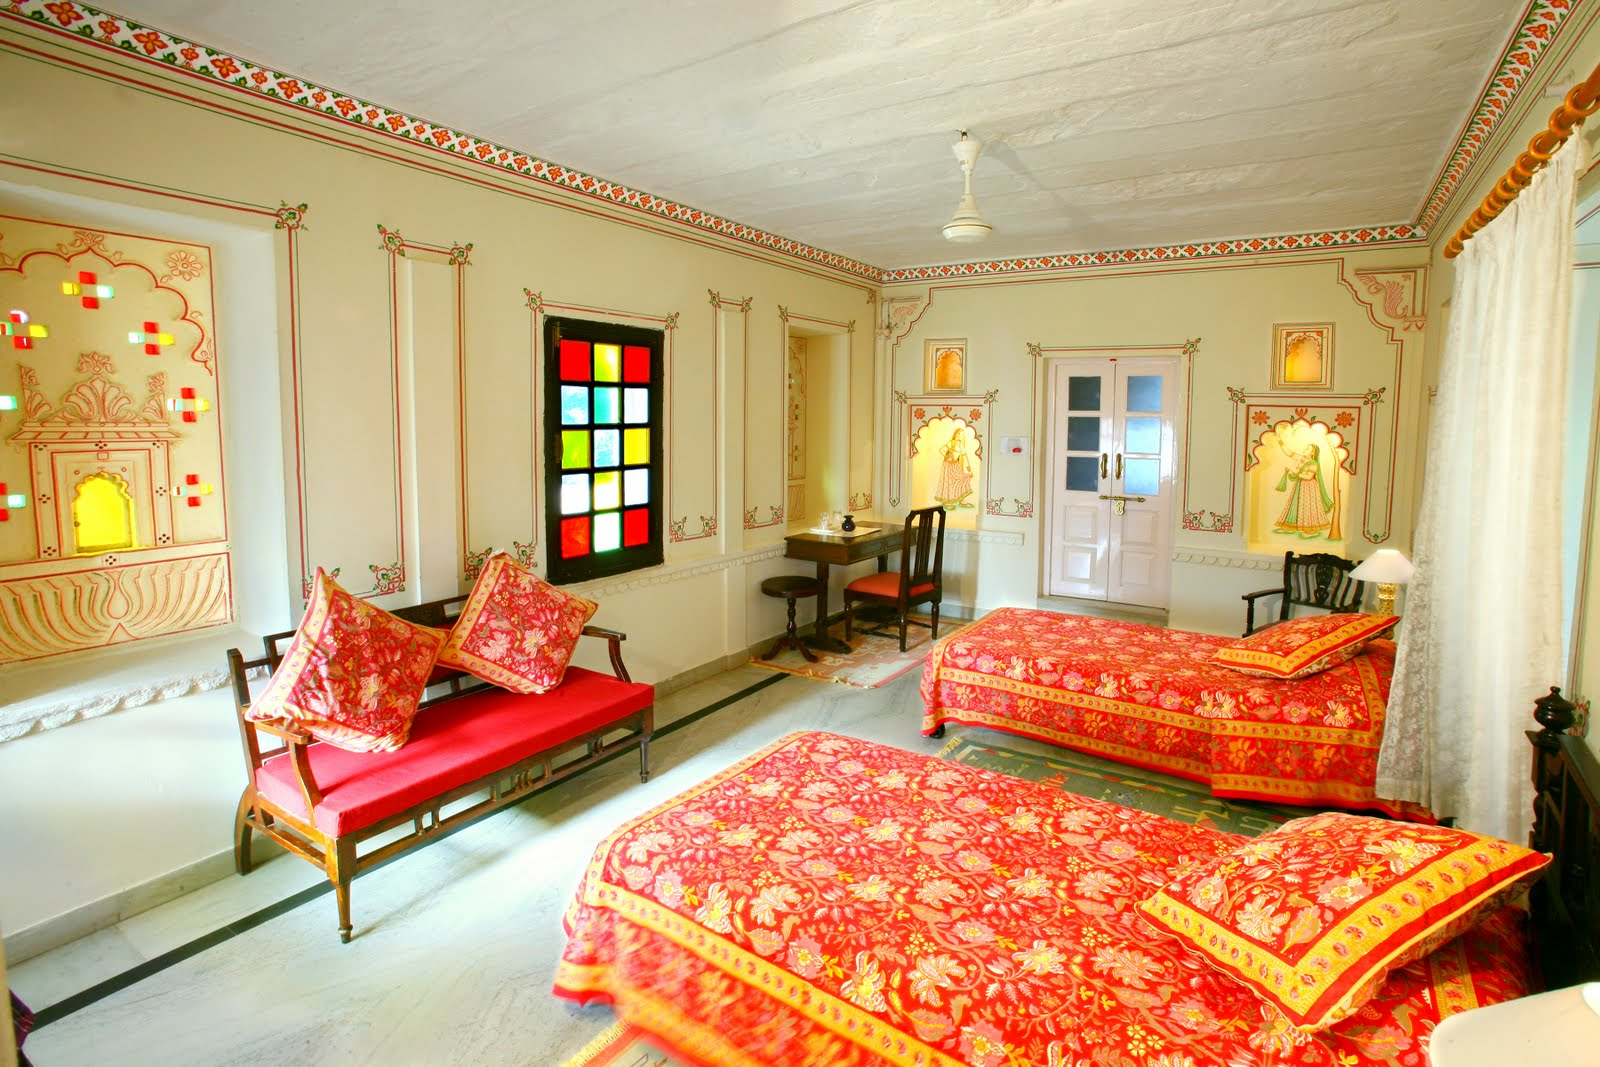 Rajasthani style interior design ideas palace interiors for Interior decoration